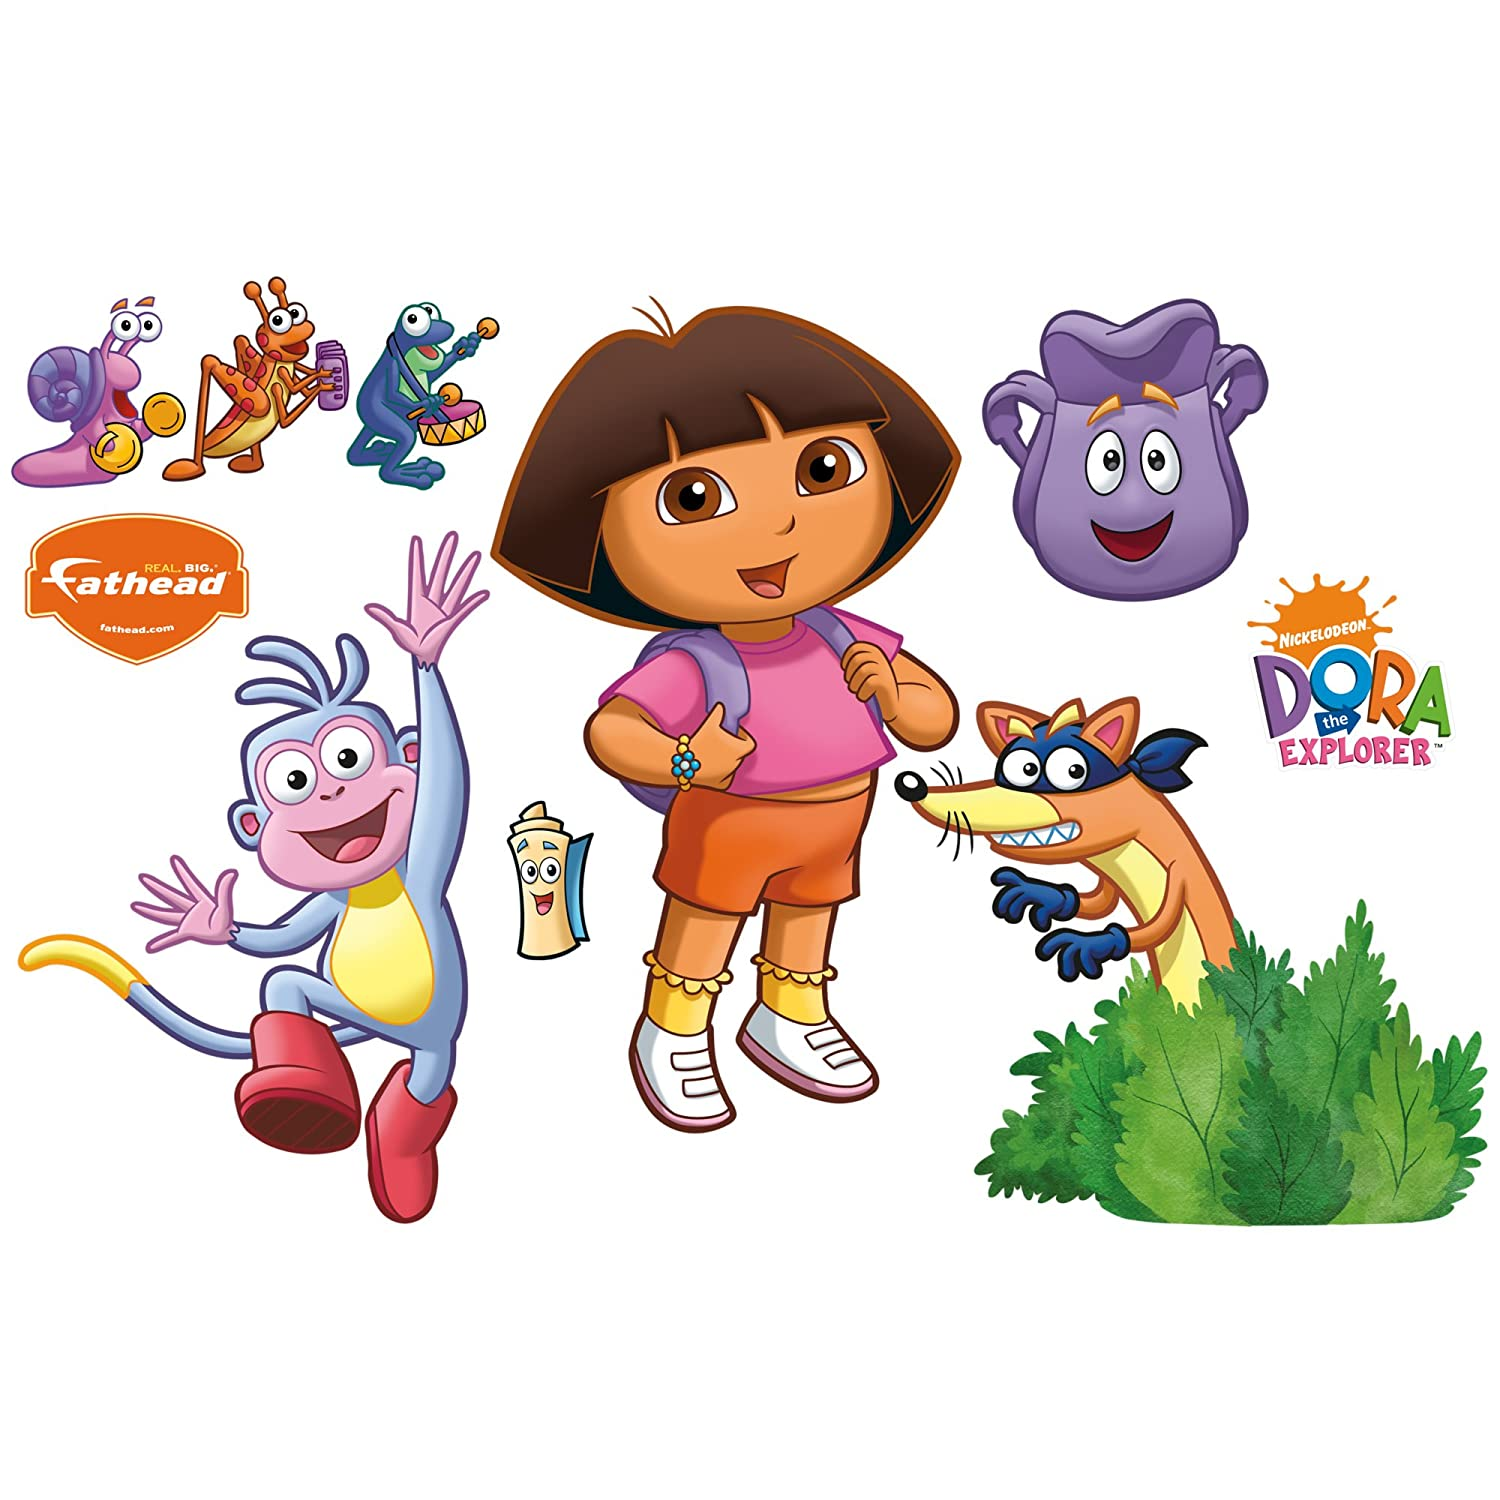 Uncategorized Dora And Boots Pictures dora the explorer backpack and boots wall decal amazon ca home kitchen